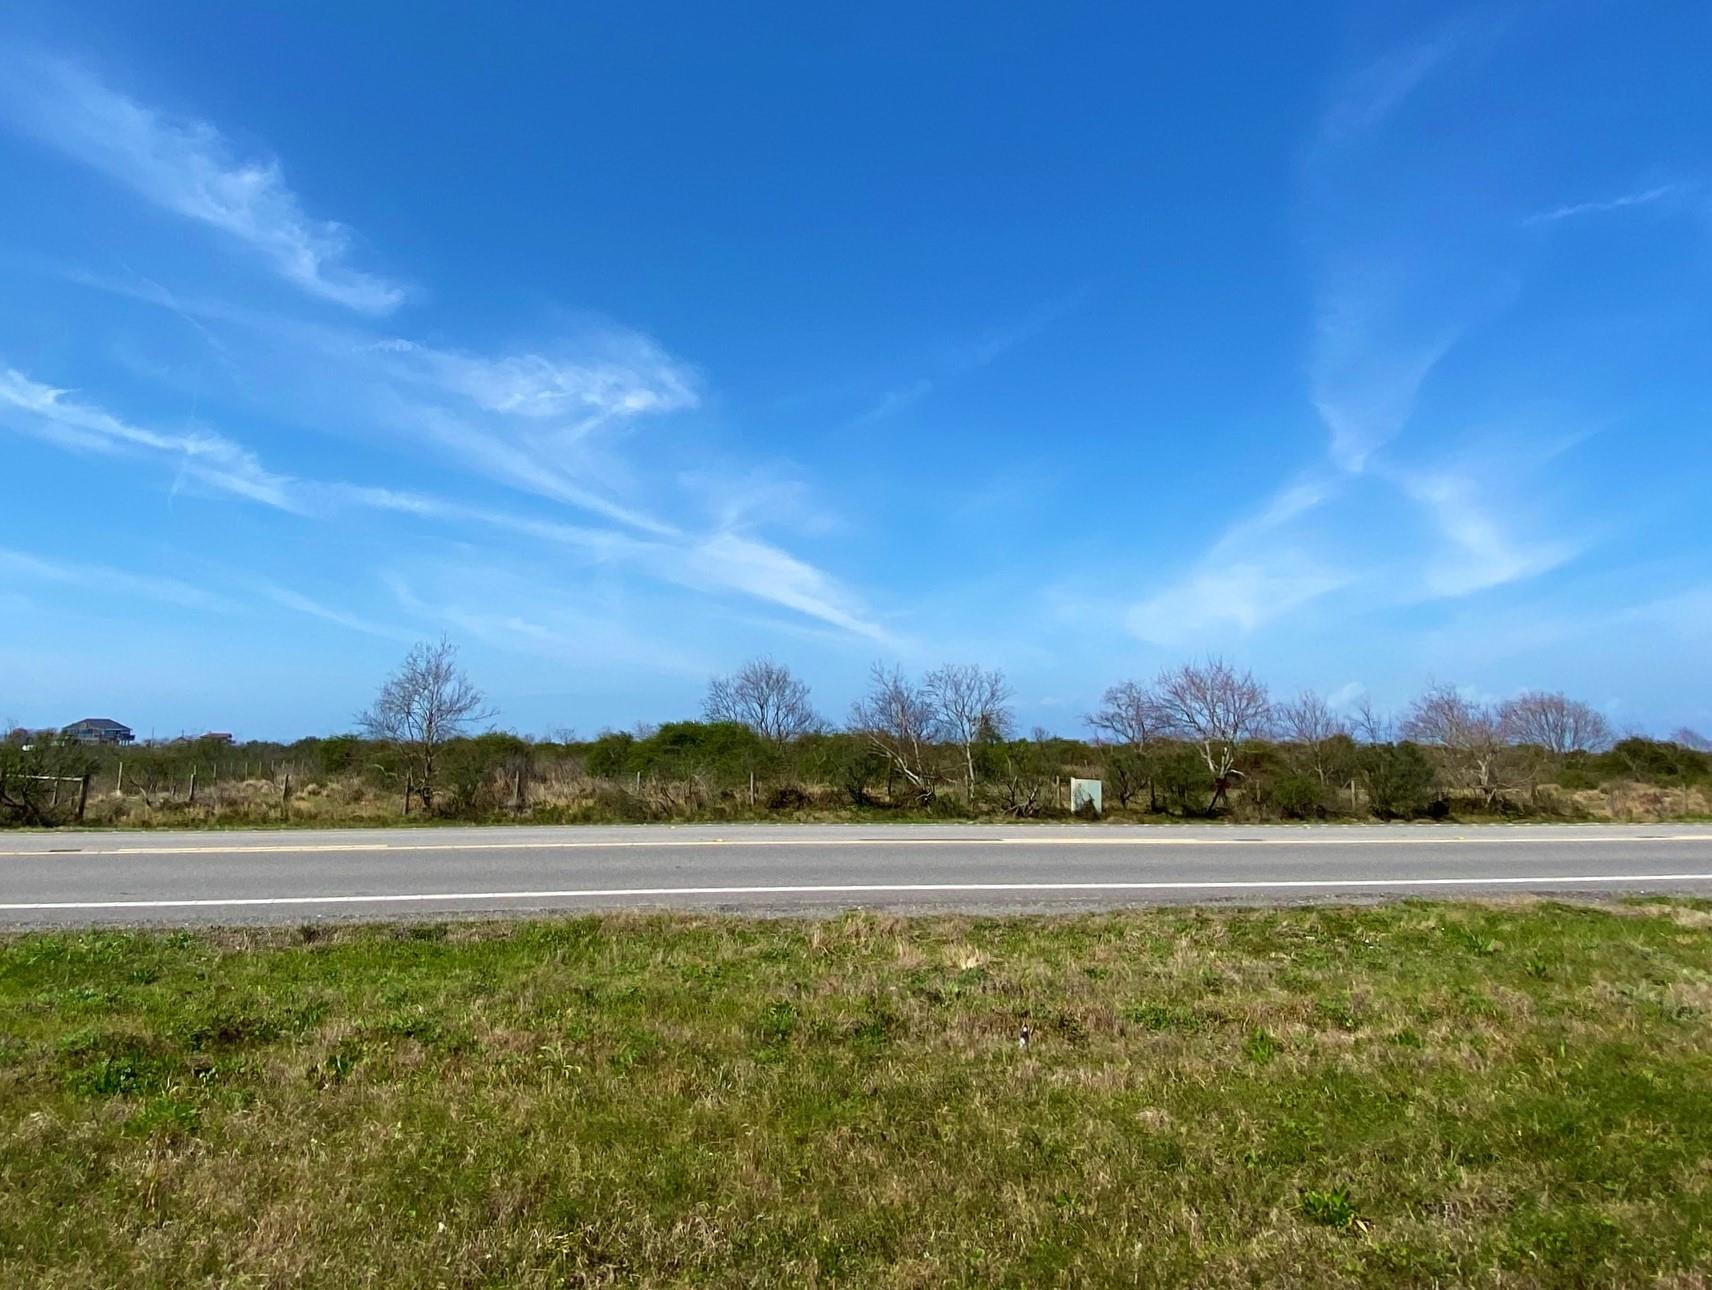 000 Hwy 87 Property Photo - Crystal Beach, TX real estate listing